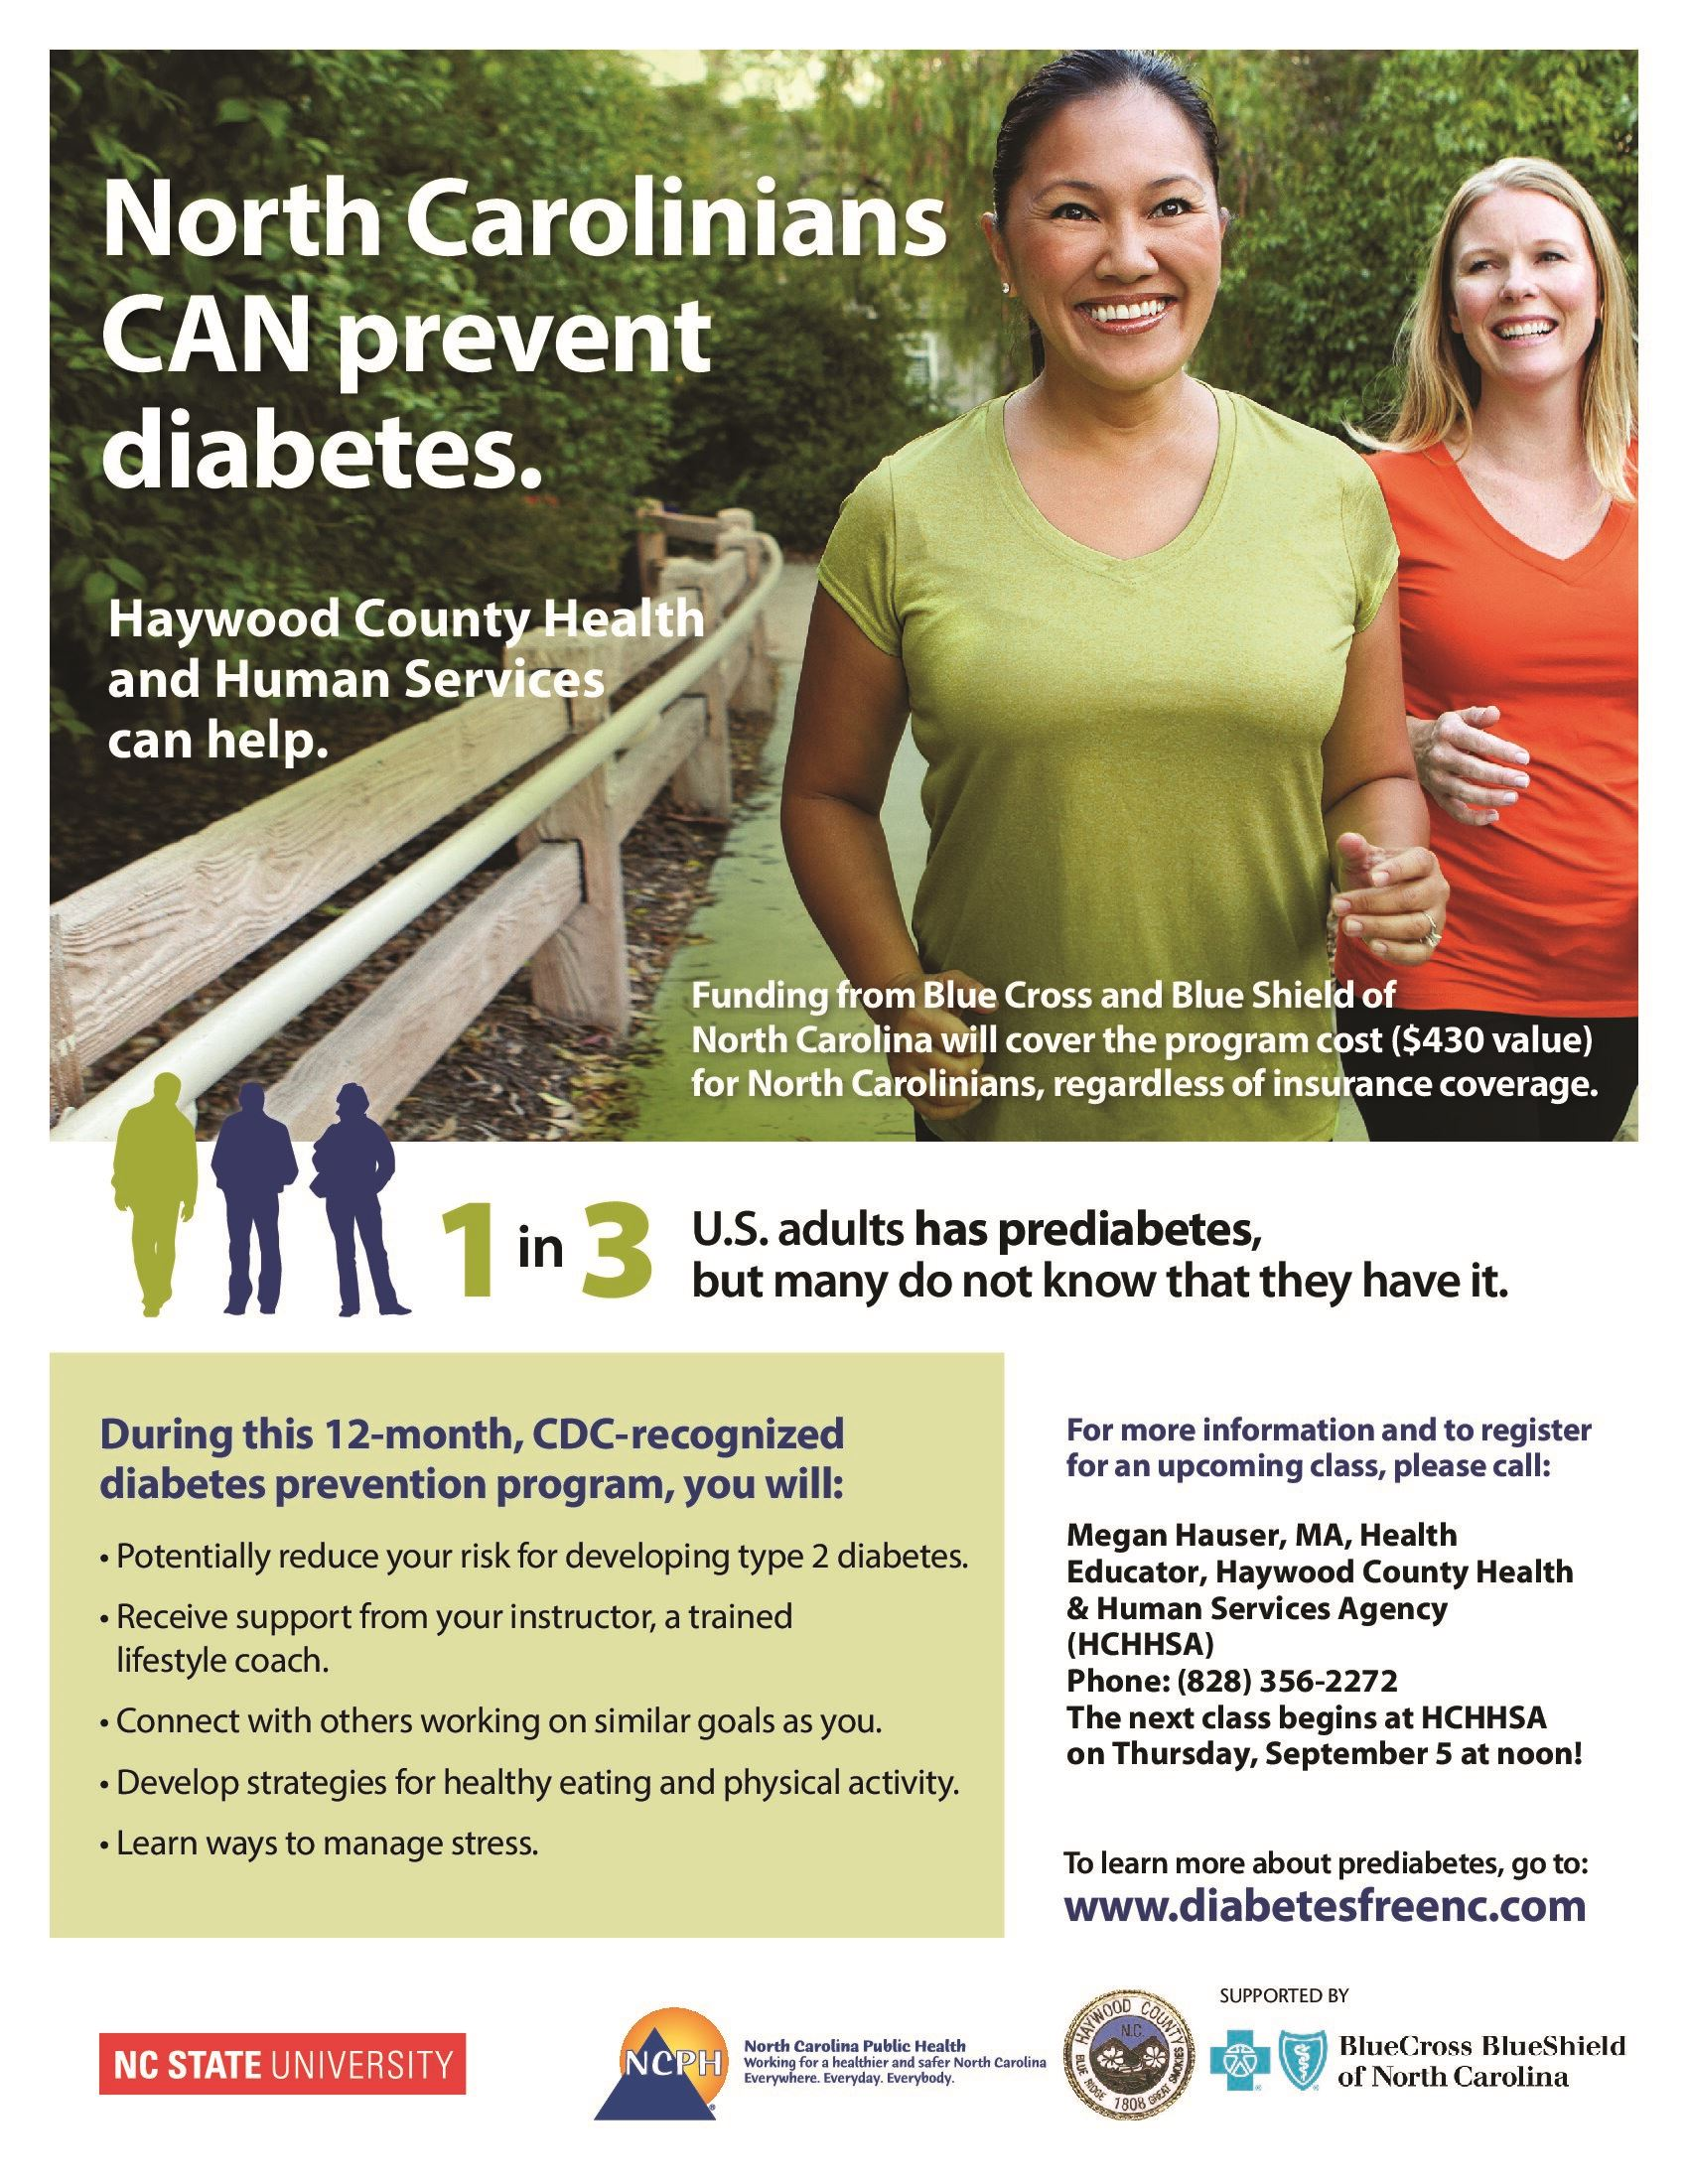 Flyer advertising diabetes prevention classes.  Classes are no-cost, and run for 12 months.  Incenti